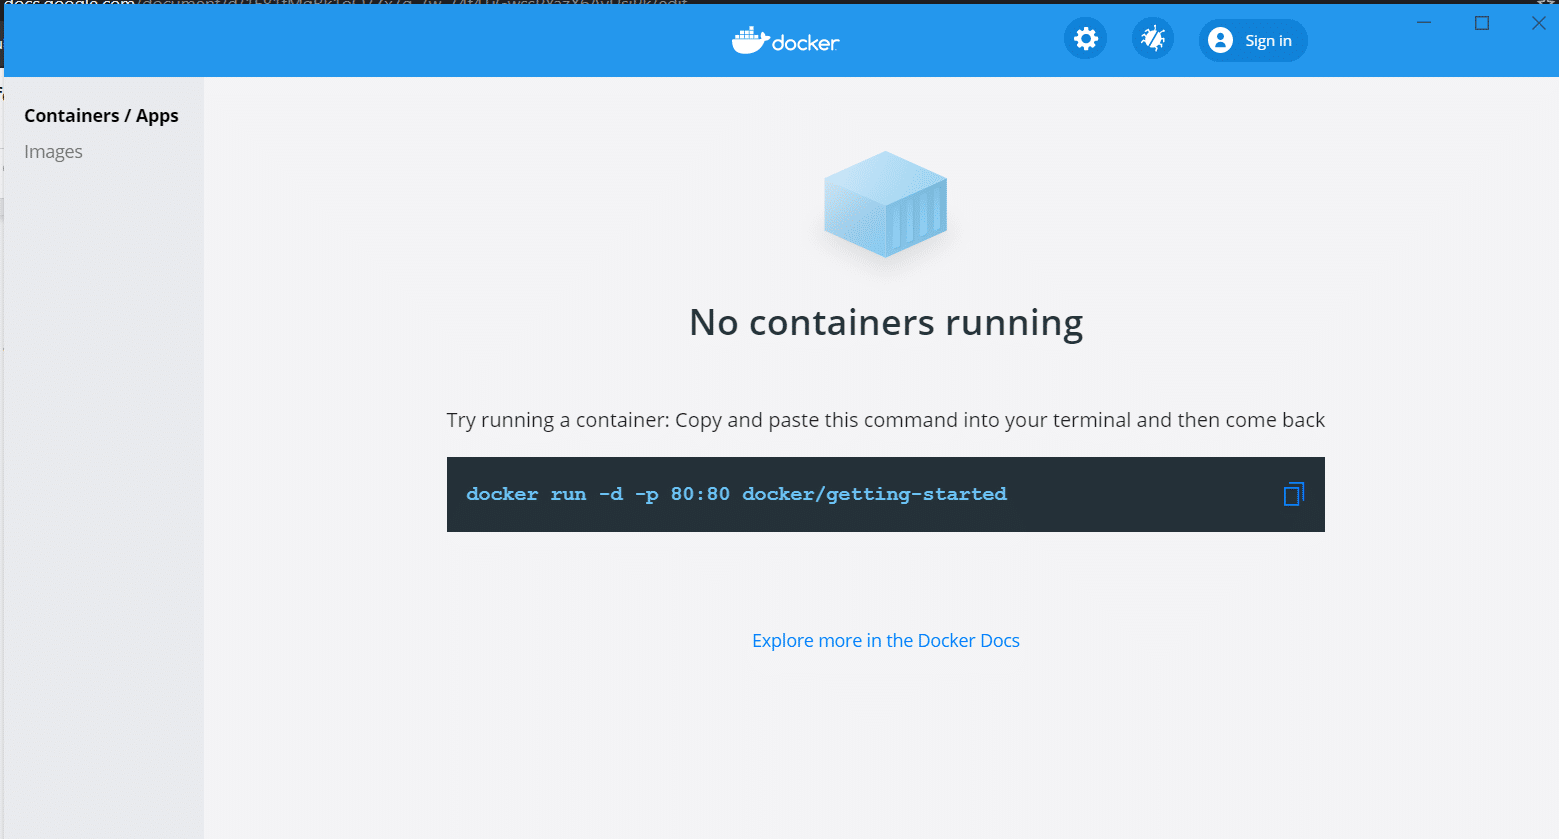 Installation of Docker containers for Windows